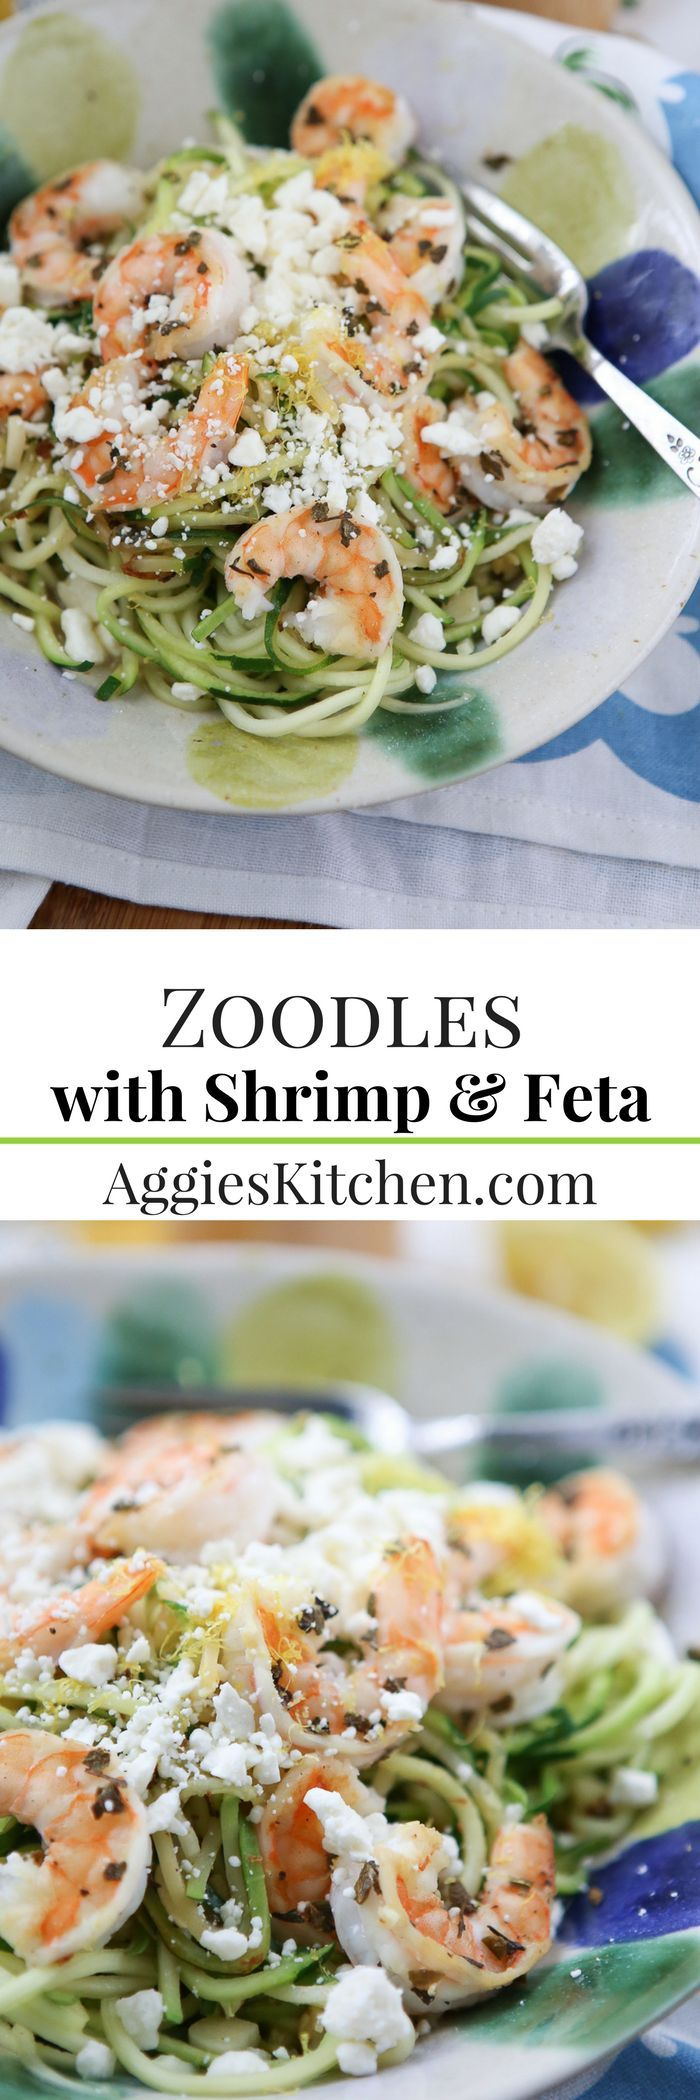 Healthy and simple, this Skinnytaste Zoodles with Shrimp and Feta recipe comes together in just 15 minutes! Low carb and low calorie recipe.